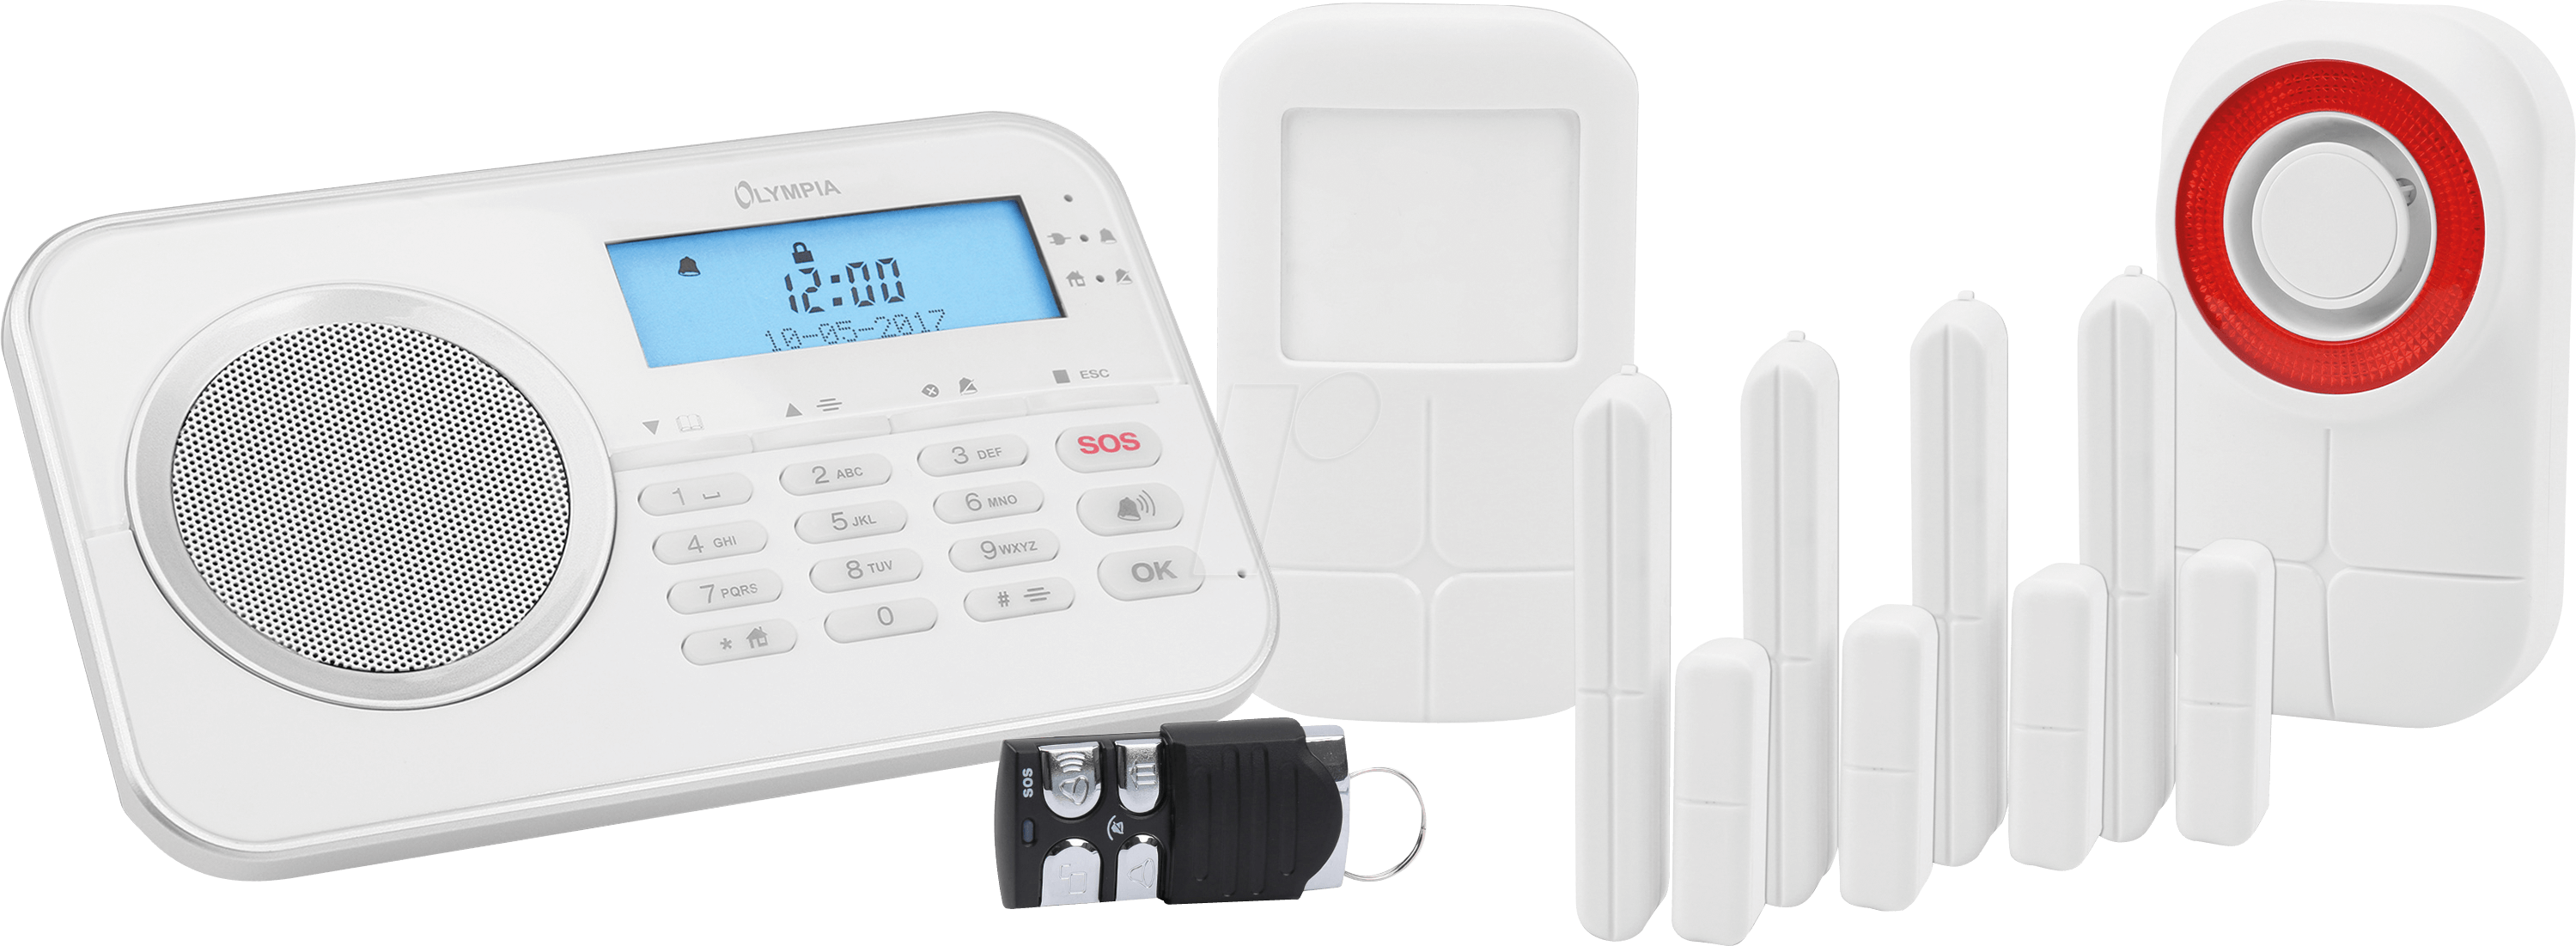 OLYMPIA 6003: Alarmanlage Protect, Funk 868 MHz, mit GSM Modul bei ...